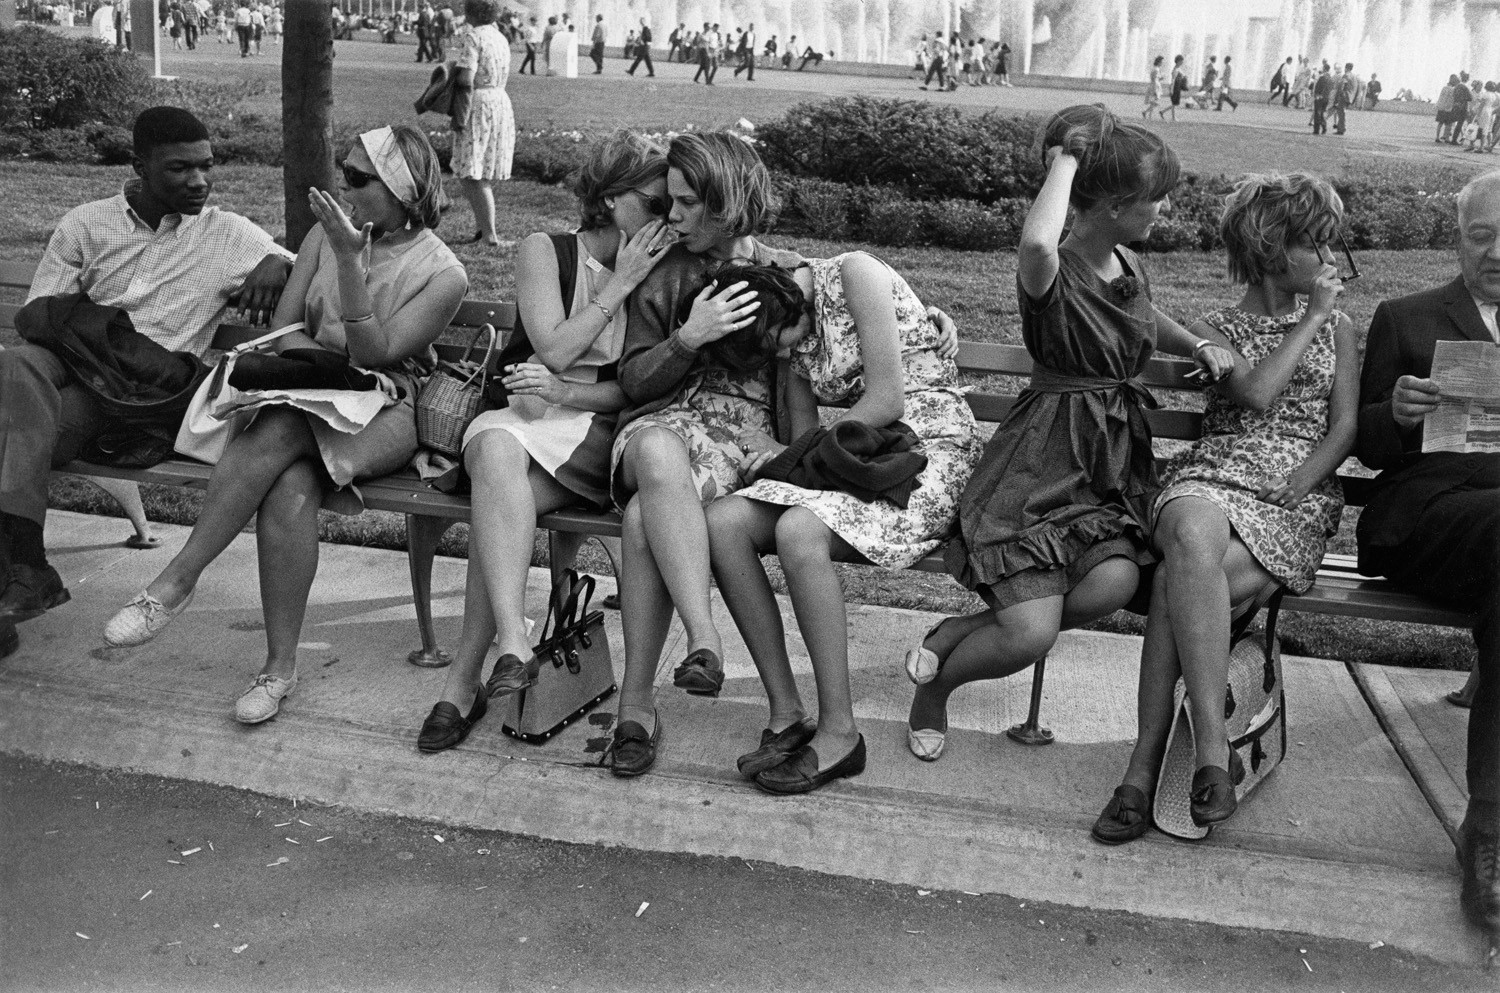 Garry Winogrand, World's Fair, New York City, New York, 1964